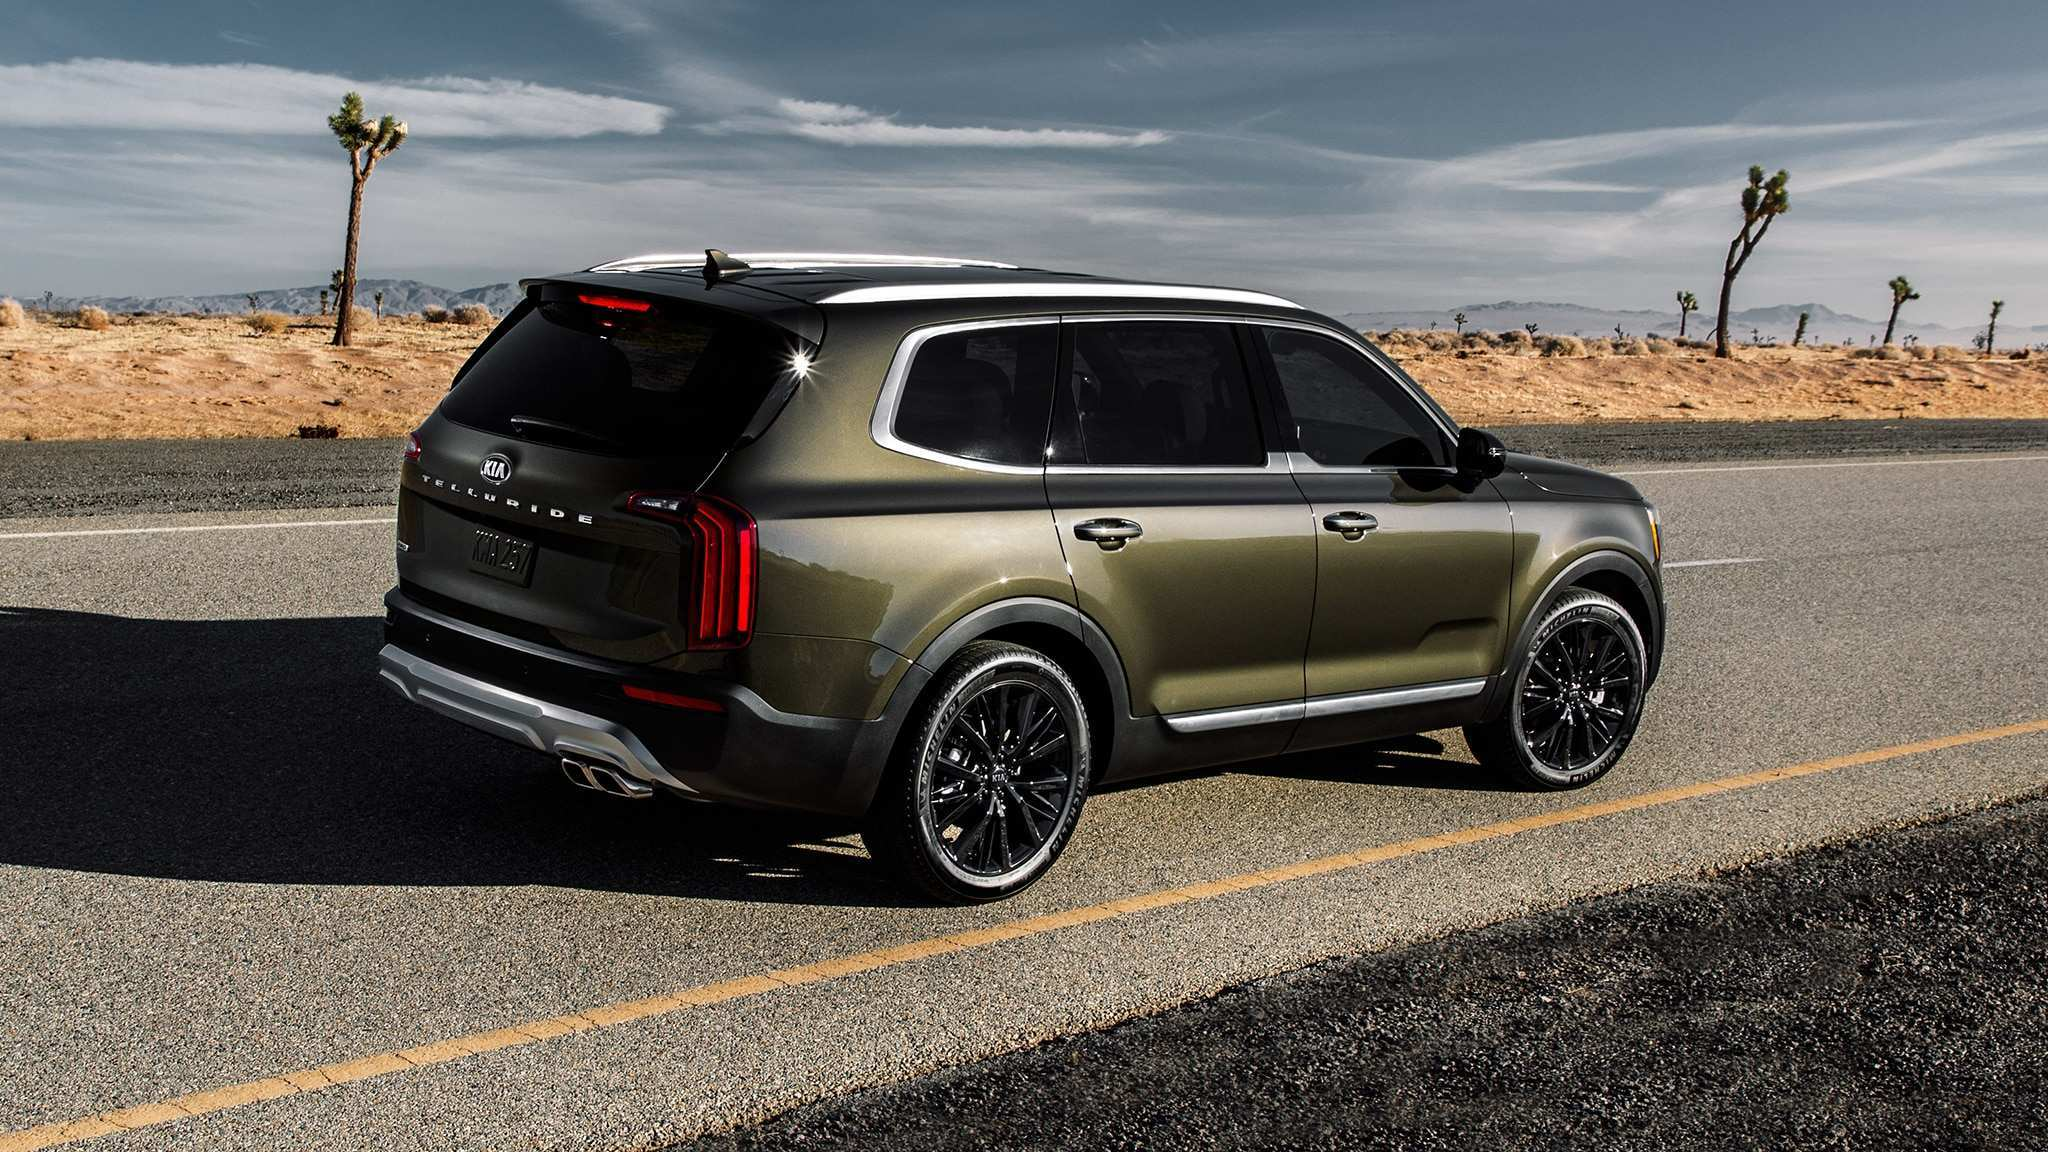 36 New Telluride Kia 2019 Photos by Telluride Kia 2019